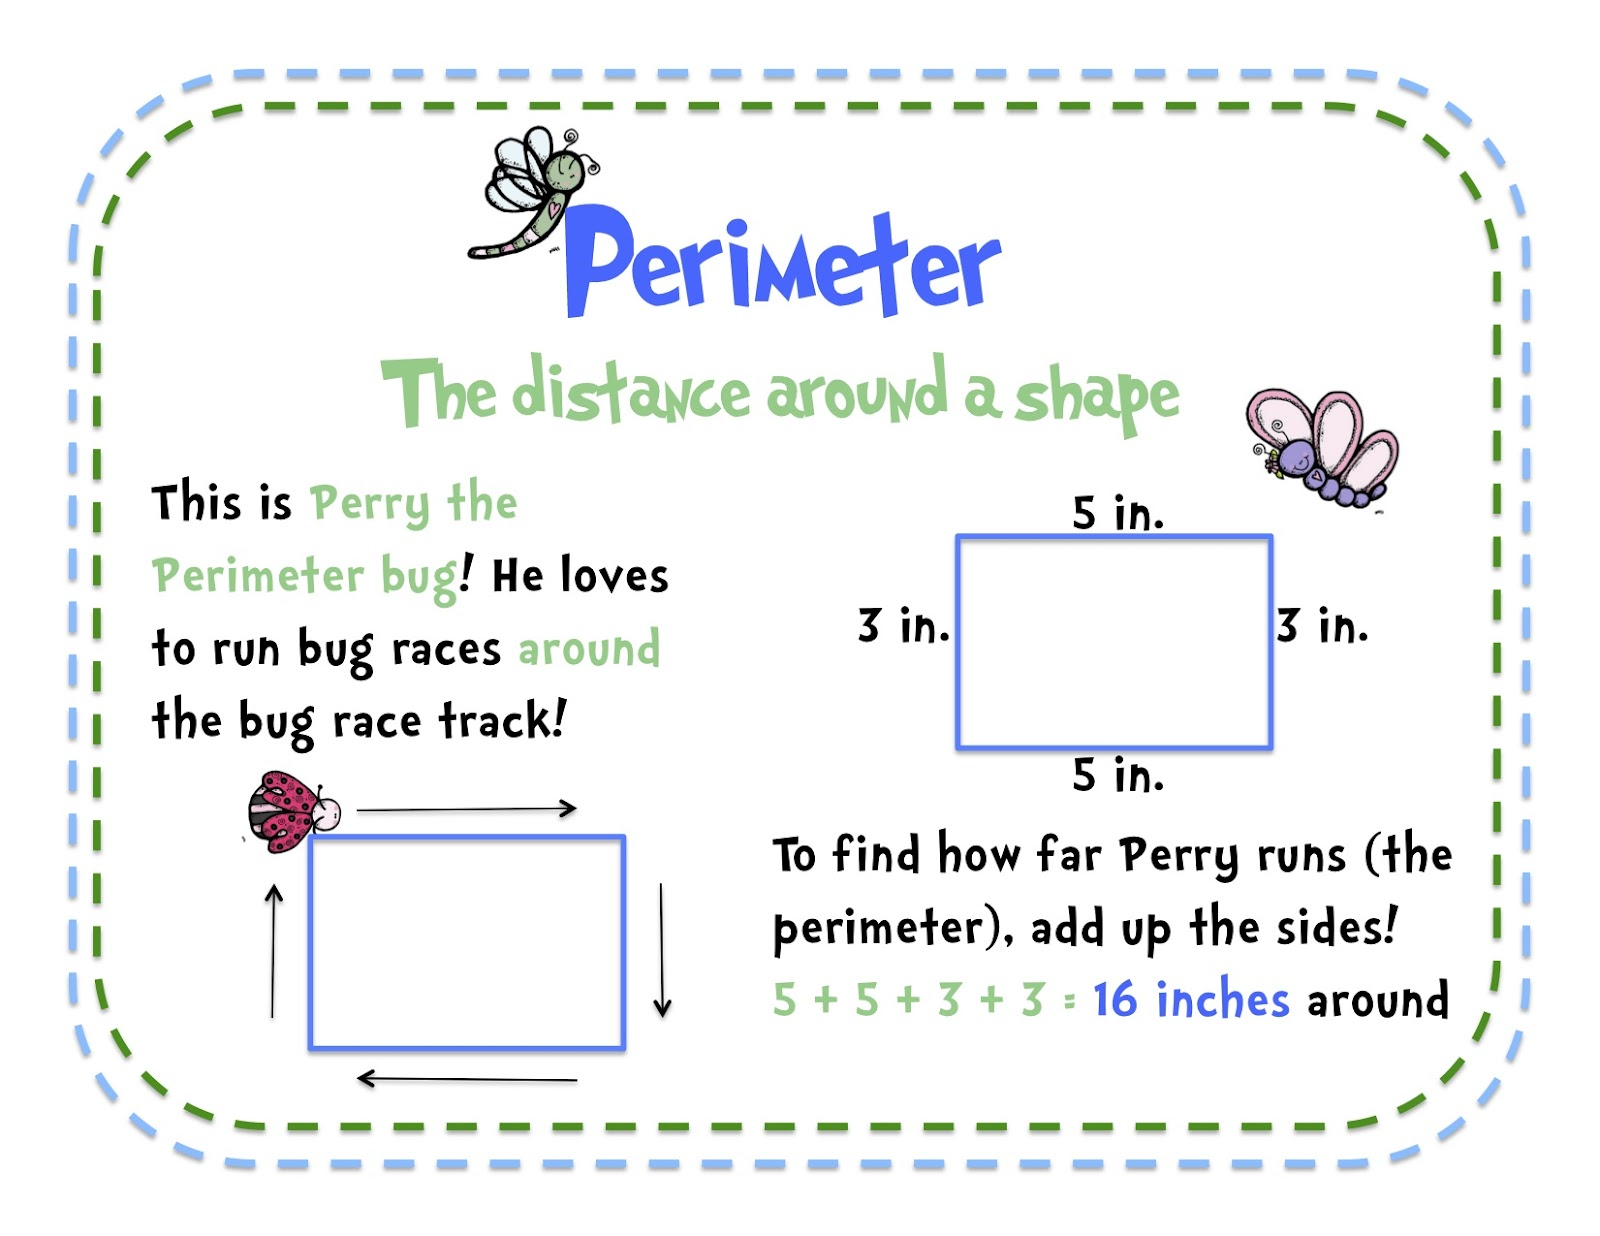 Chapter 23 How To Find Out The Perimeter